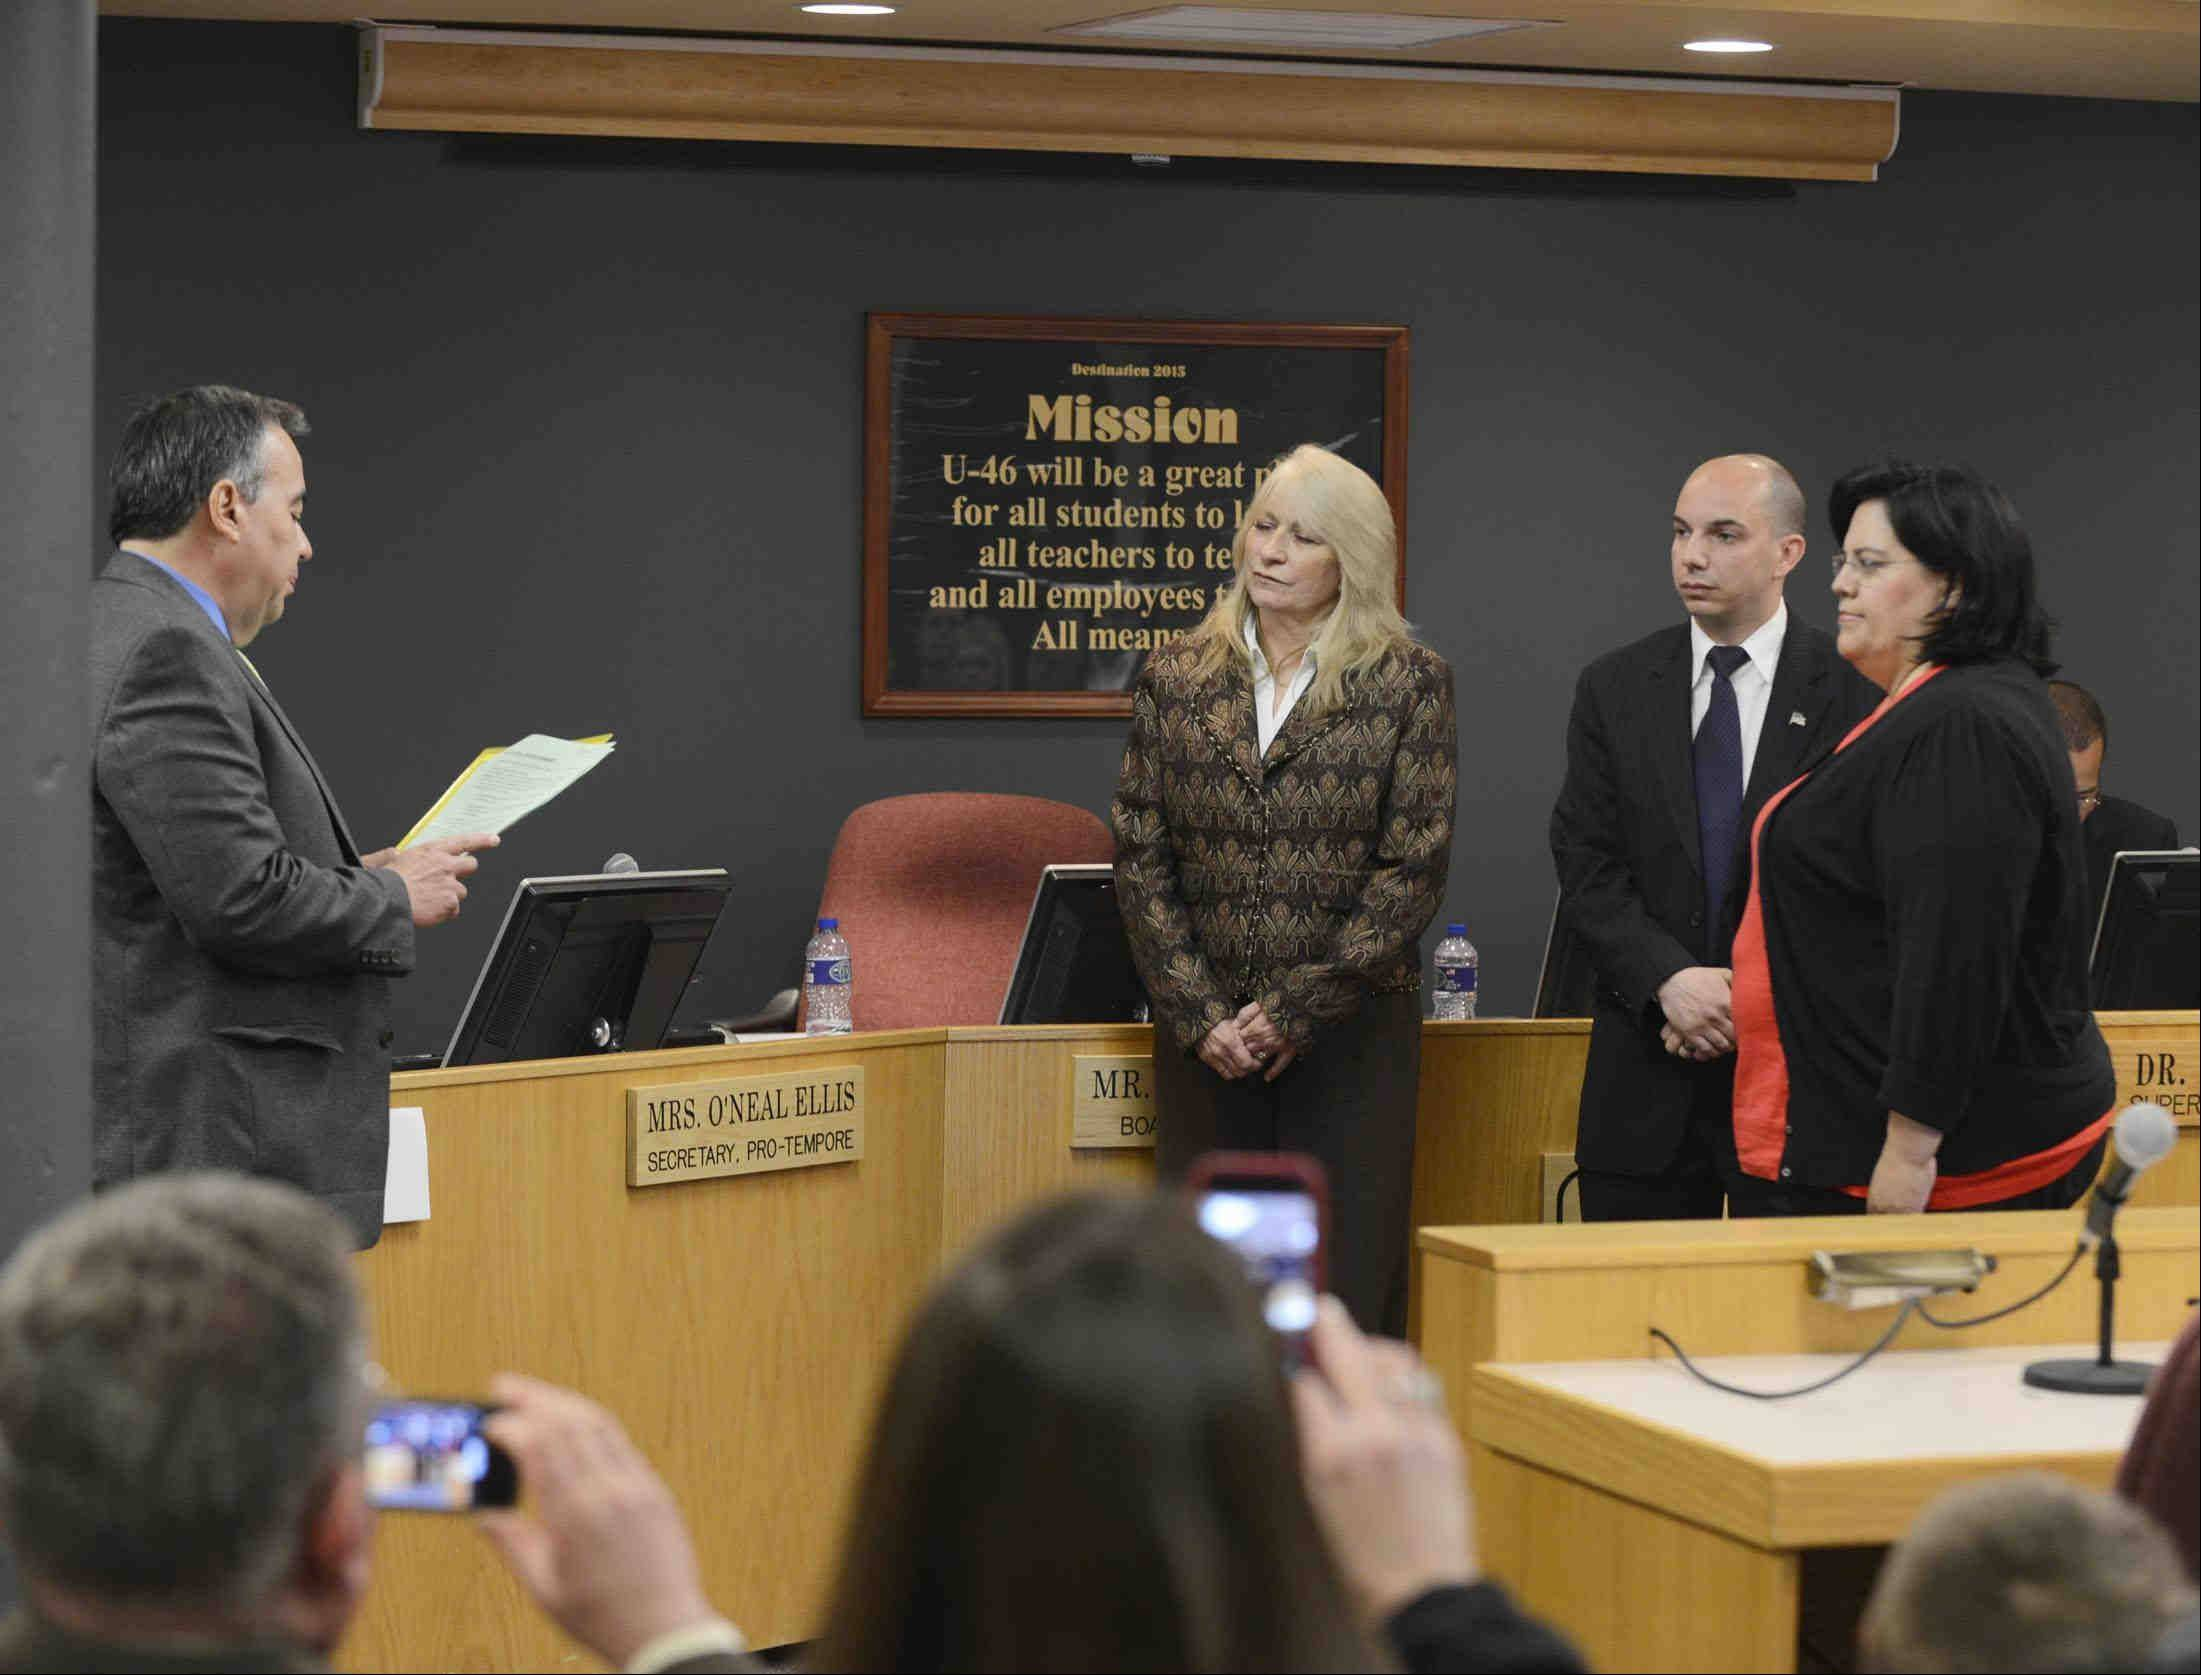 Donna Smith, middle left, takes her fourth oath of office as she is sworn Monday night with new U-46 board members Veronica Noland and Frank Napolitano in Elgin. Smith was re-elected board president by her peers.